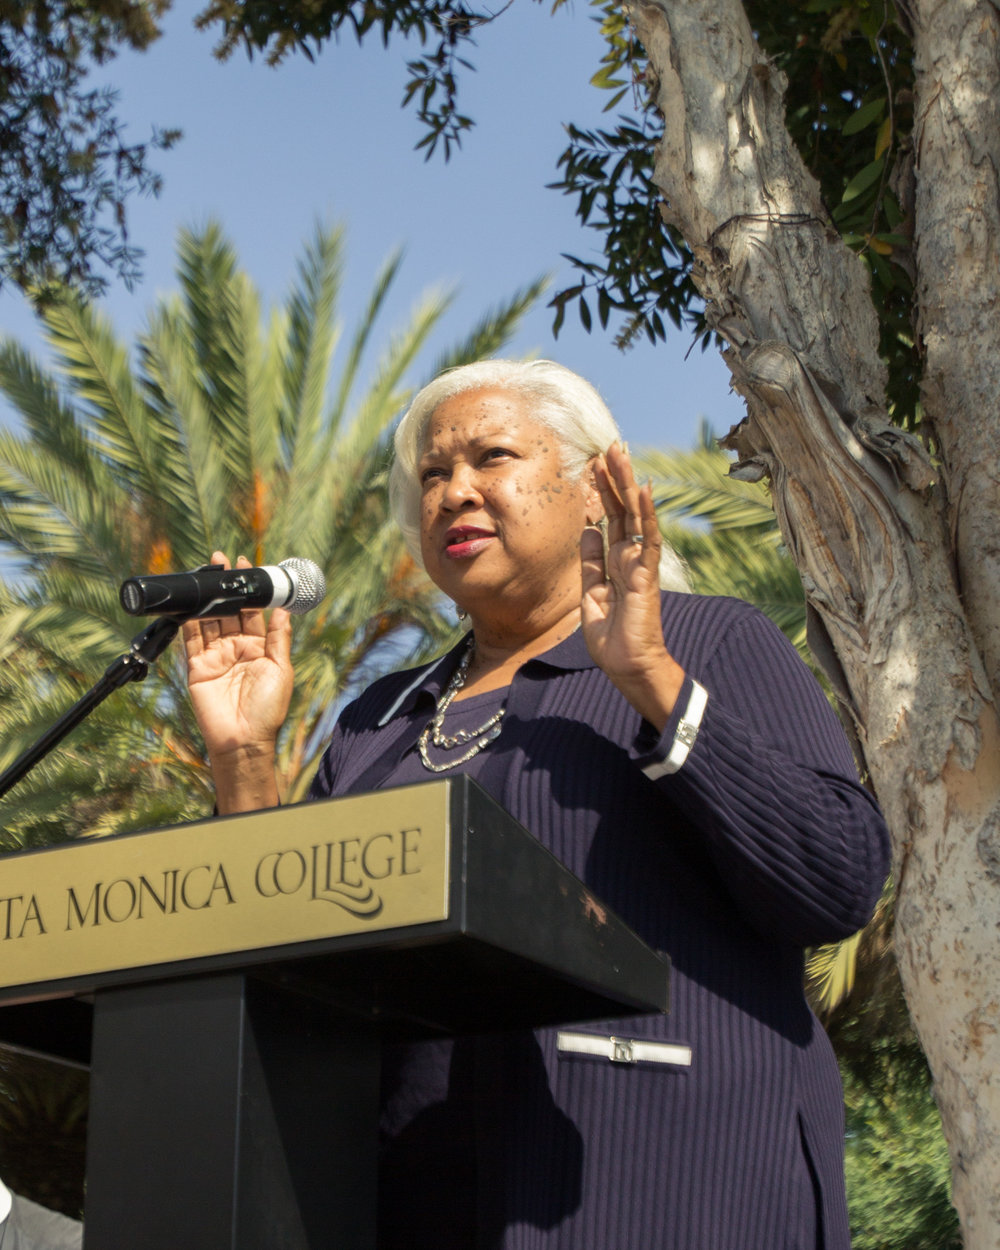 Santa Monica College President, Kathryn Jeffery addressing Pittsburgh Synagogue Shooting victims on the Santa Monica Quad area in Santa Monica, California on Tuesday October 30th 2018. (Jacob Victorica/ Corsair Photo)